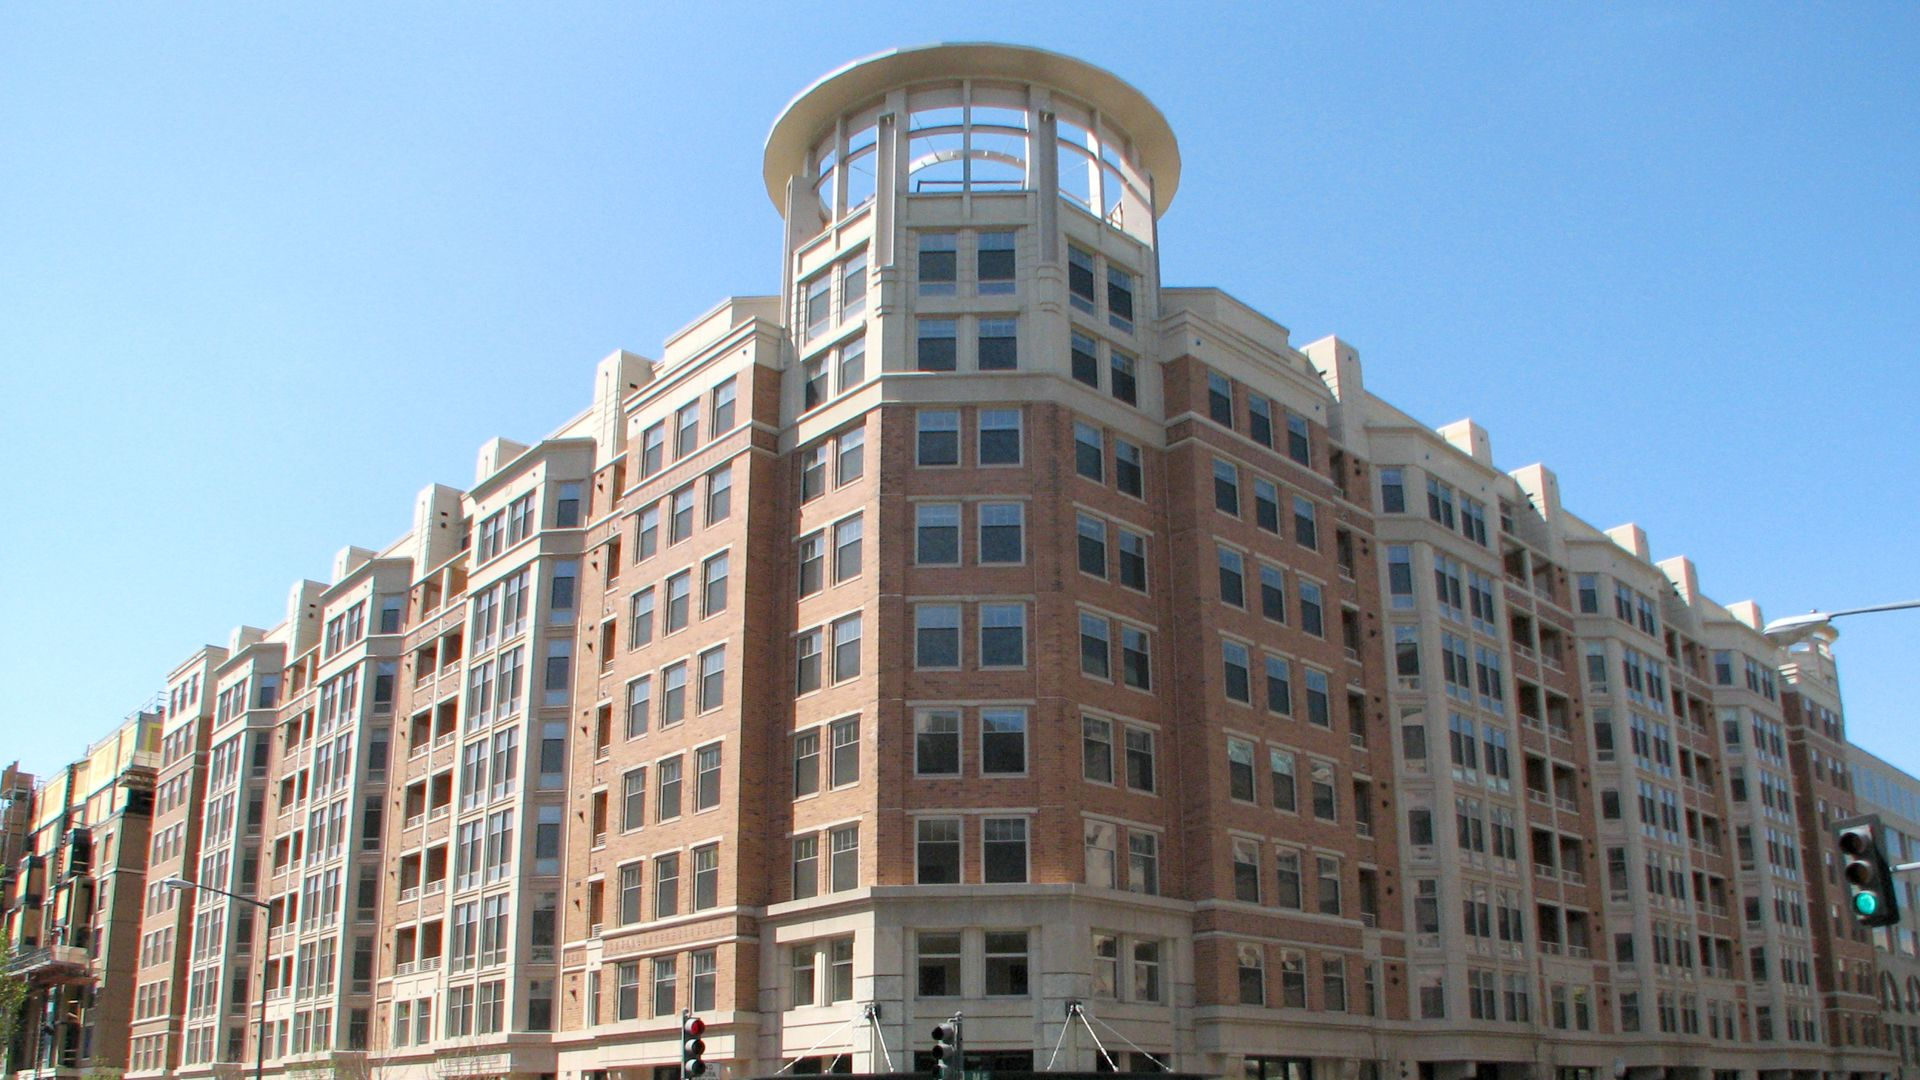 2400 m apartments geor own 2400 m street nw